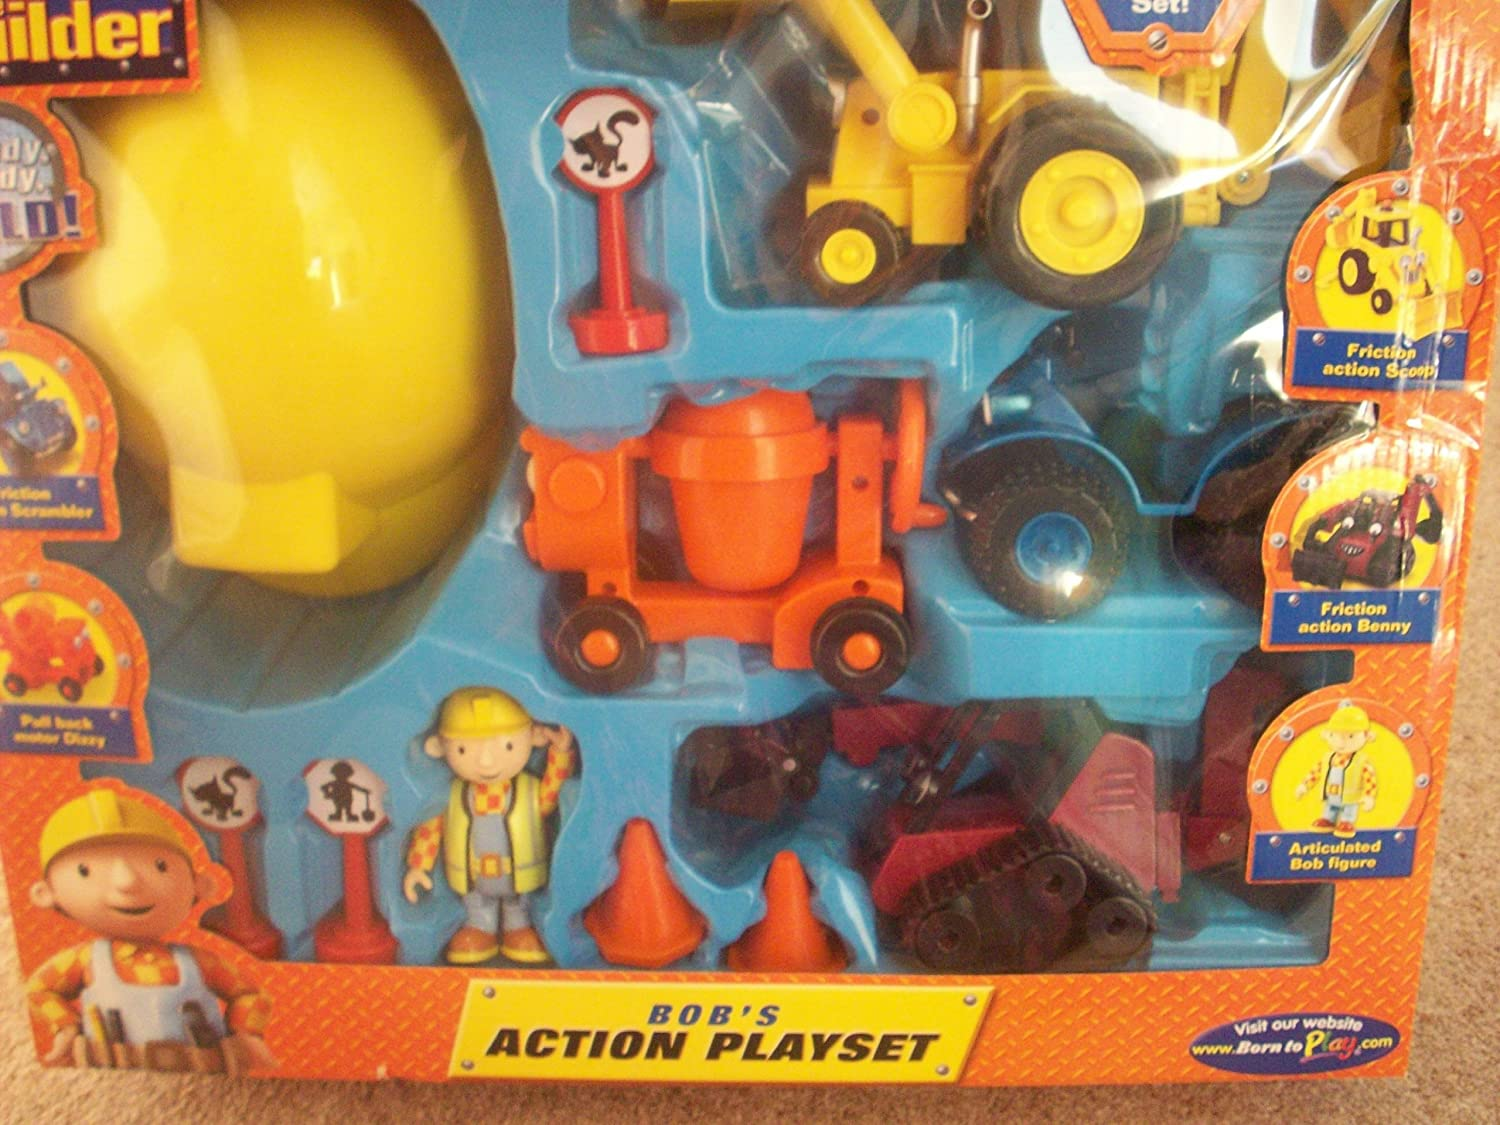 Bob the builder live online dvd rental - Bob The Builder Bob S Action Playset Born To Play Amazon Co Uk Toys Games